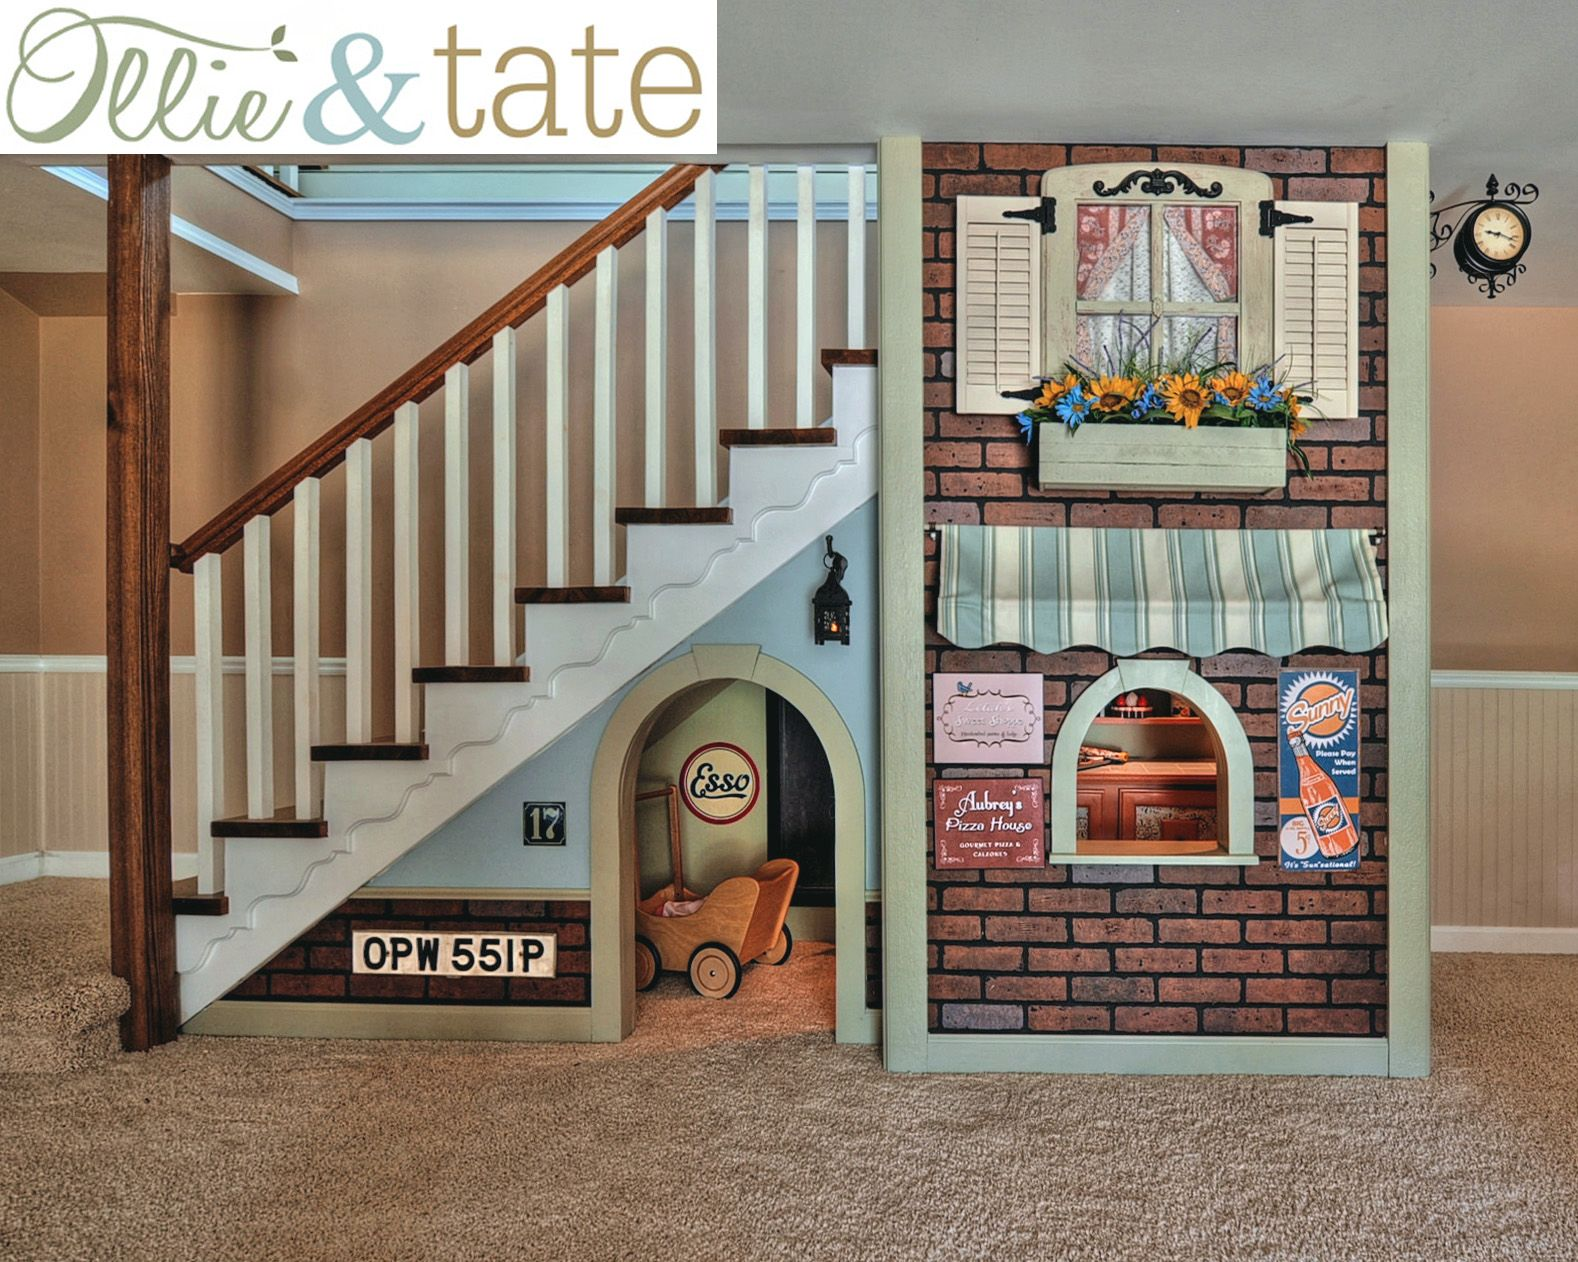 Pin By Ollie And Tate On Kid Stuff Kids Indoor Playhouse Play